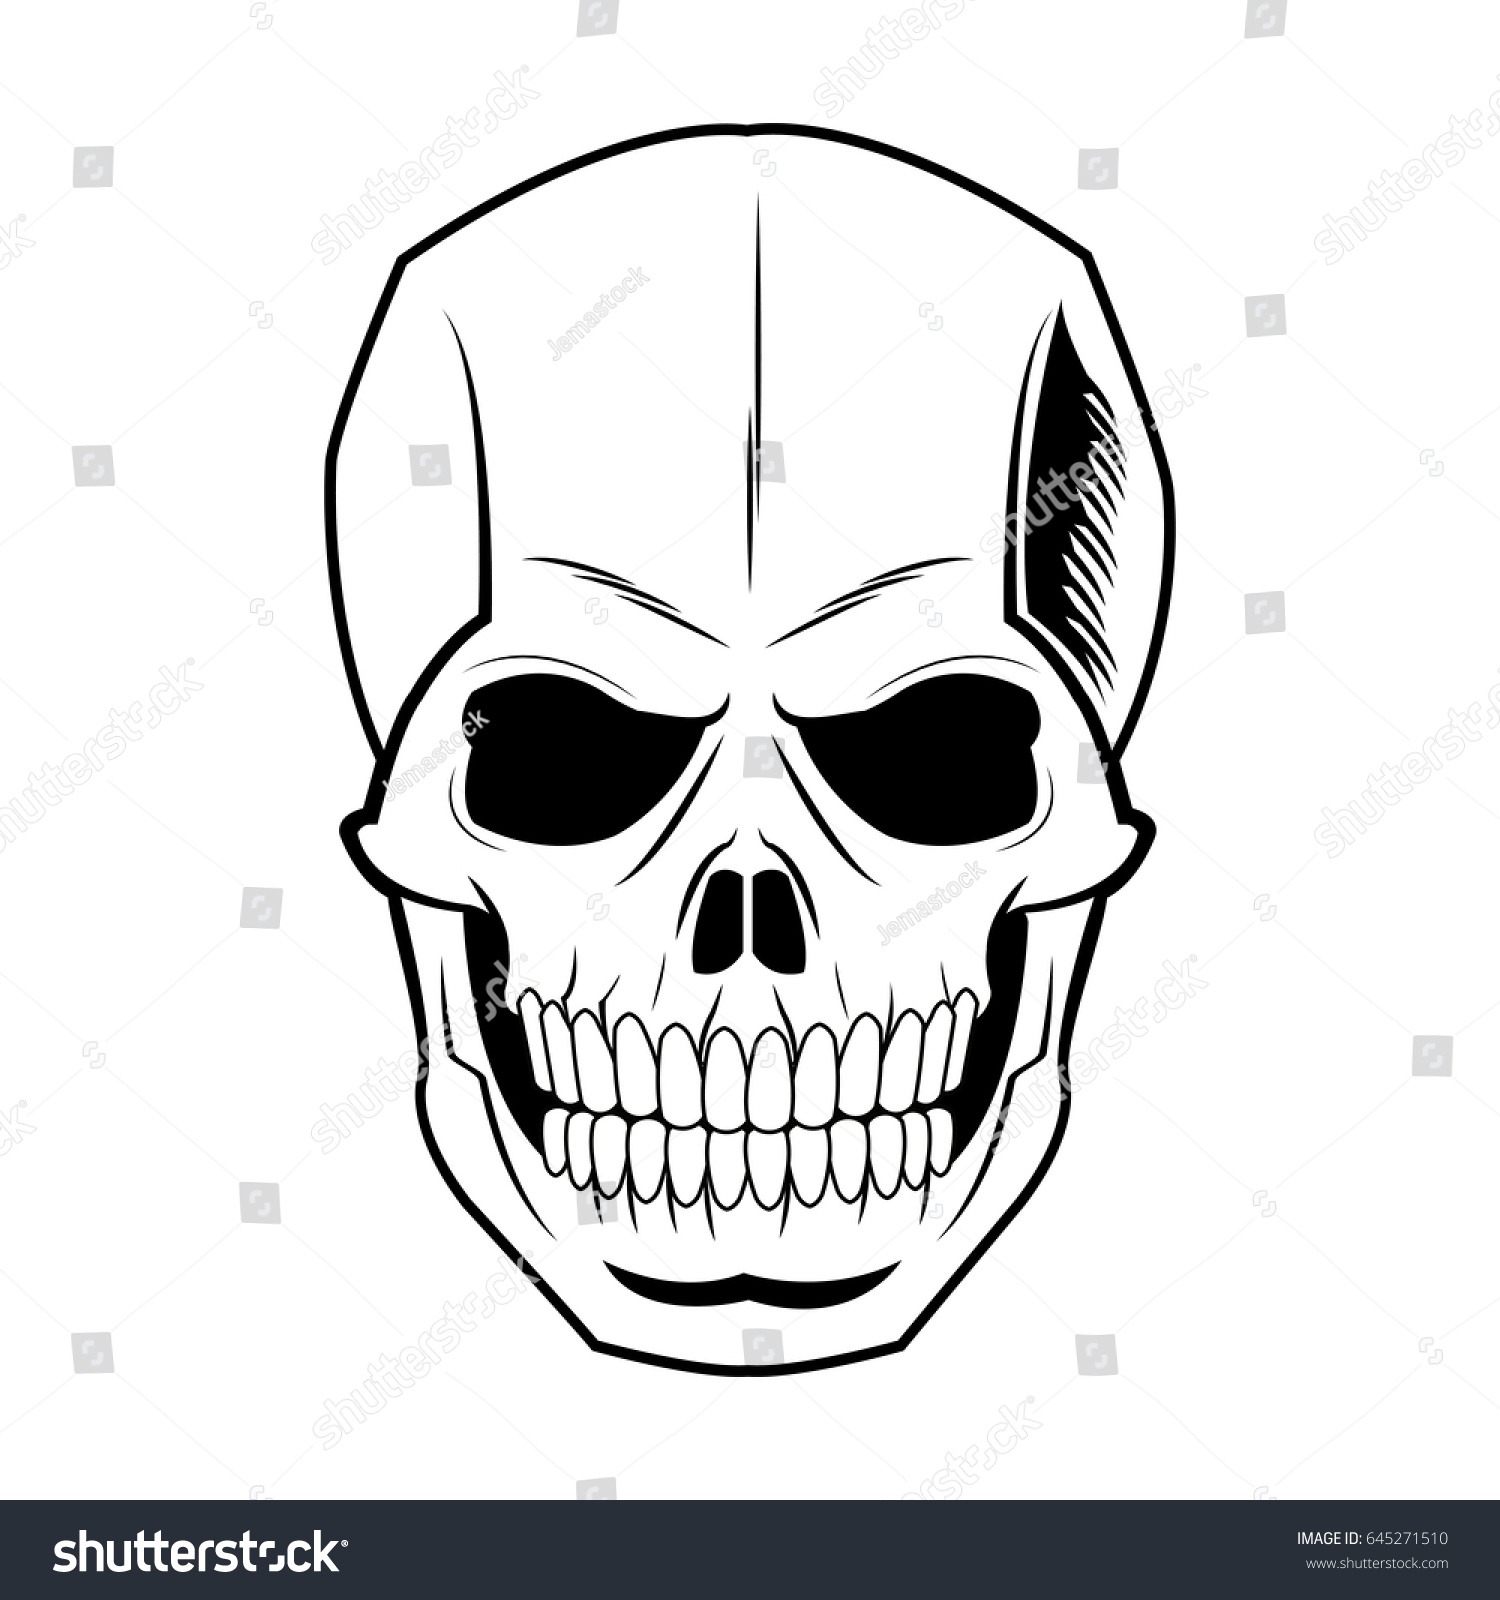 1500x1600 Skeleton Drawing Head Skeleton Human Head Vintage Bone Stock